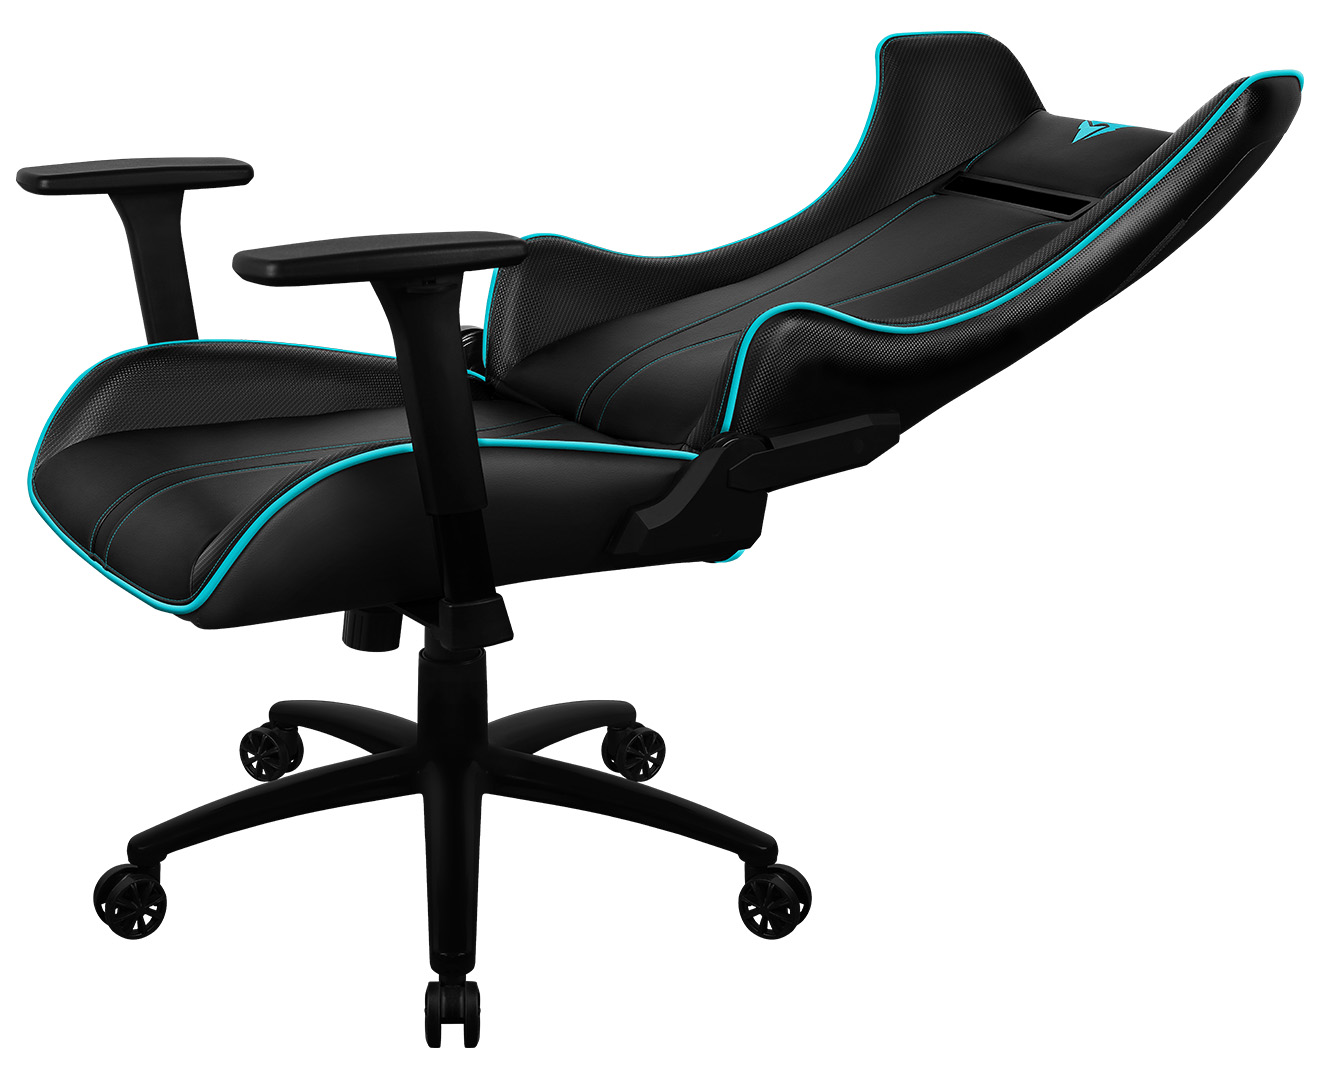 x3 office chair wooden garden chairs b q thunderx3 uc5 hex rgb lighting gaming black cyan